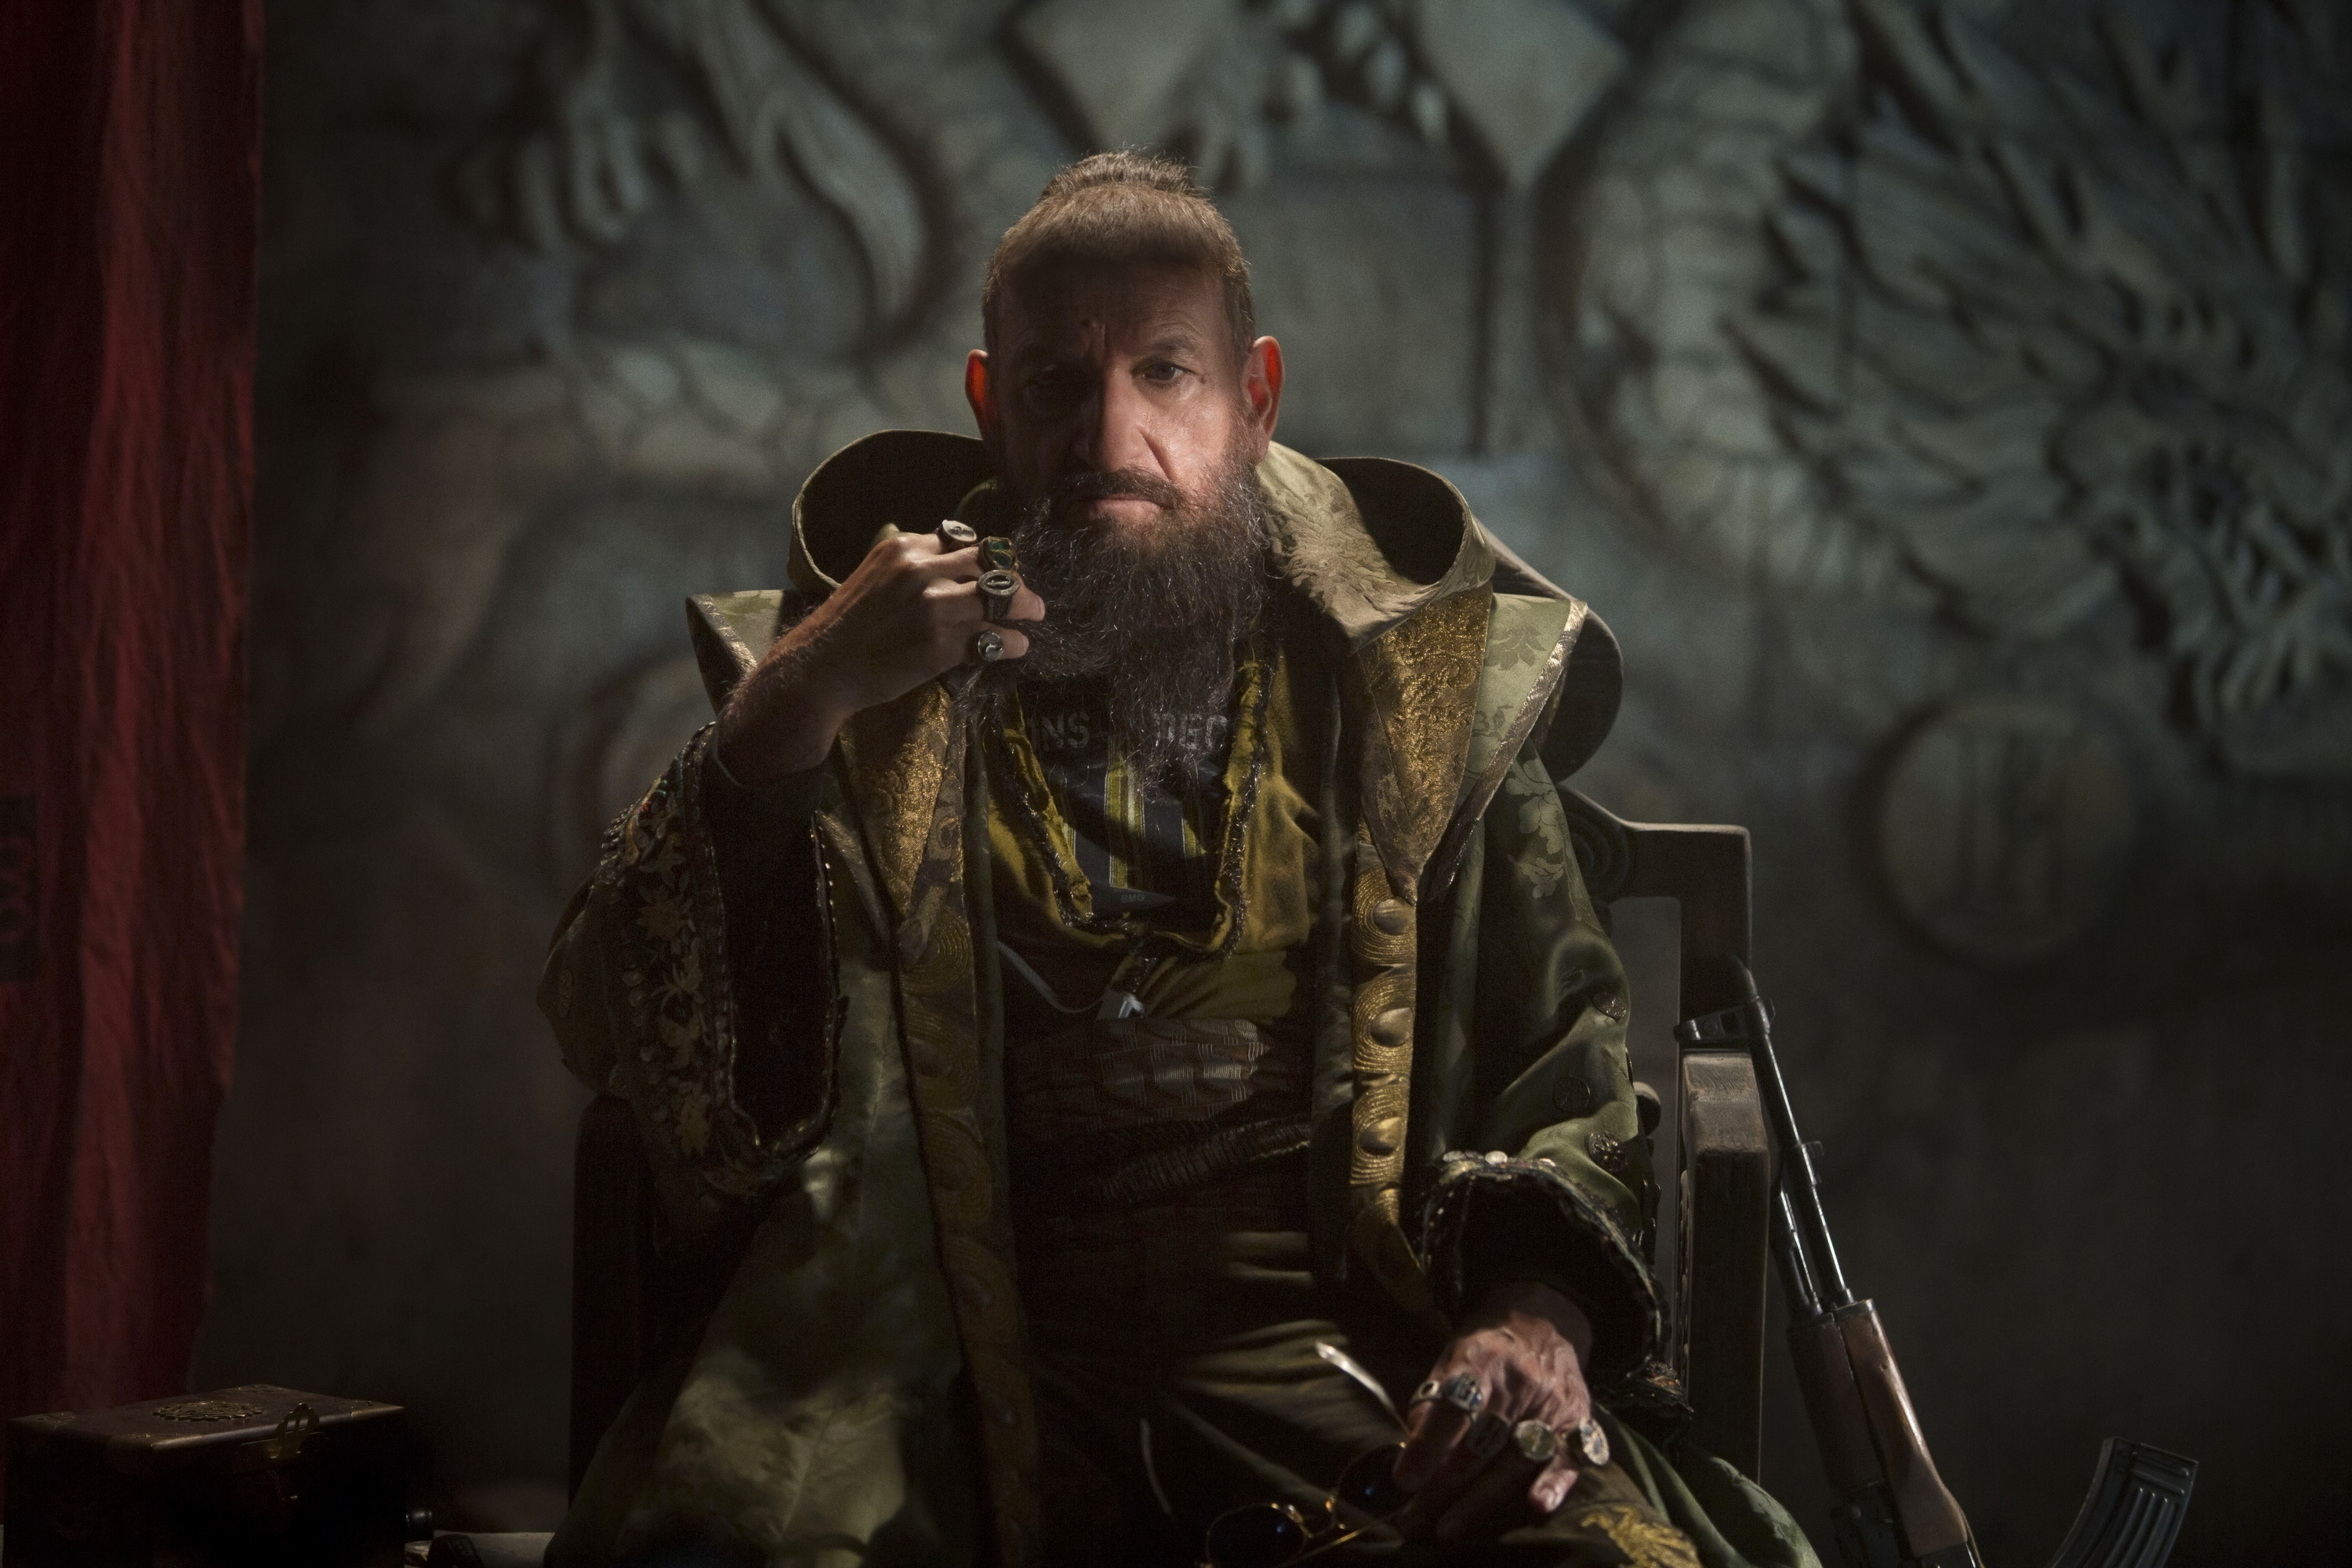 Iron Man 3 Promotional Picture: This image of the Mandarin did not reassure me.